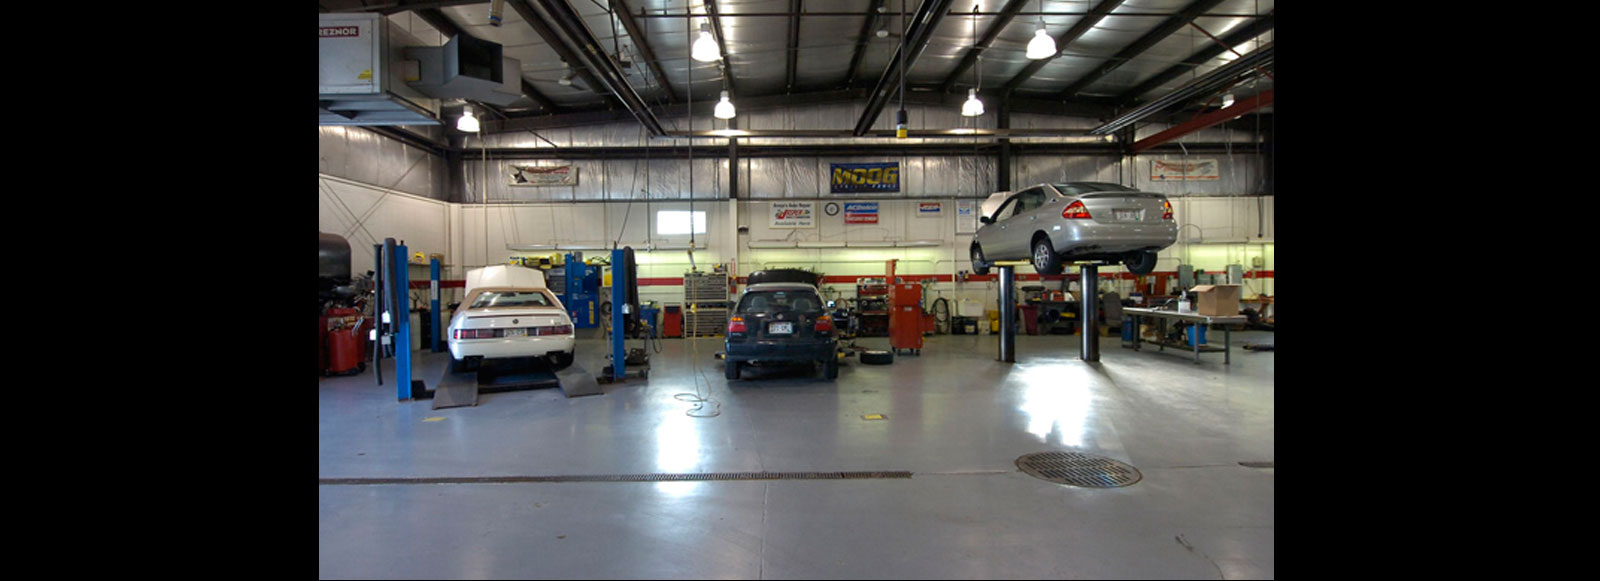 Anayas Auto Repair Inc Expert Kenosha Wi 53140 Wiring Your Car Mate Trailer To Truck Or Diagrams Hours Of Operation